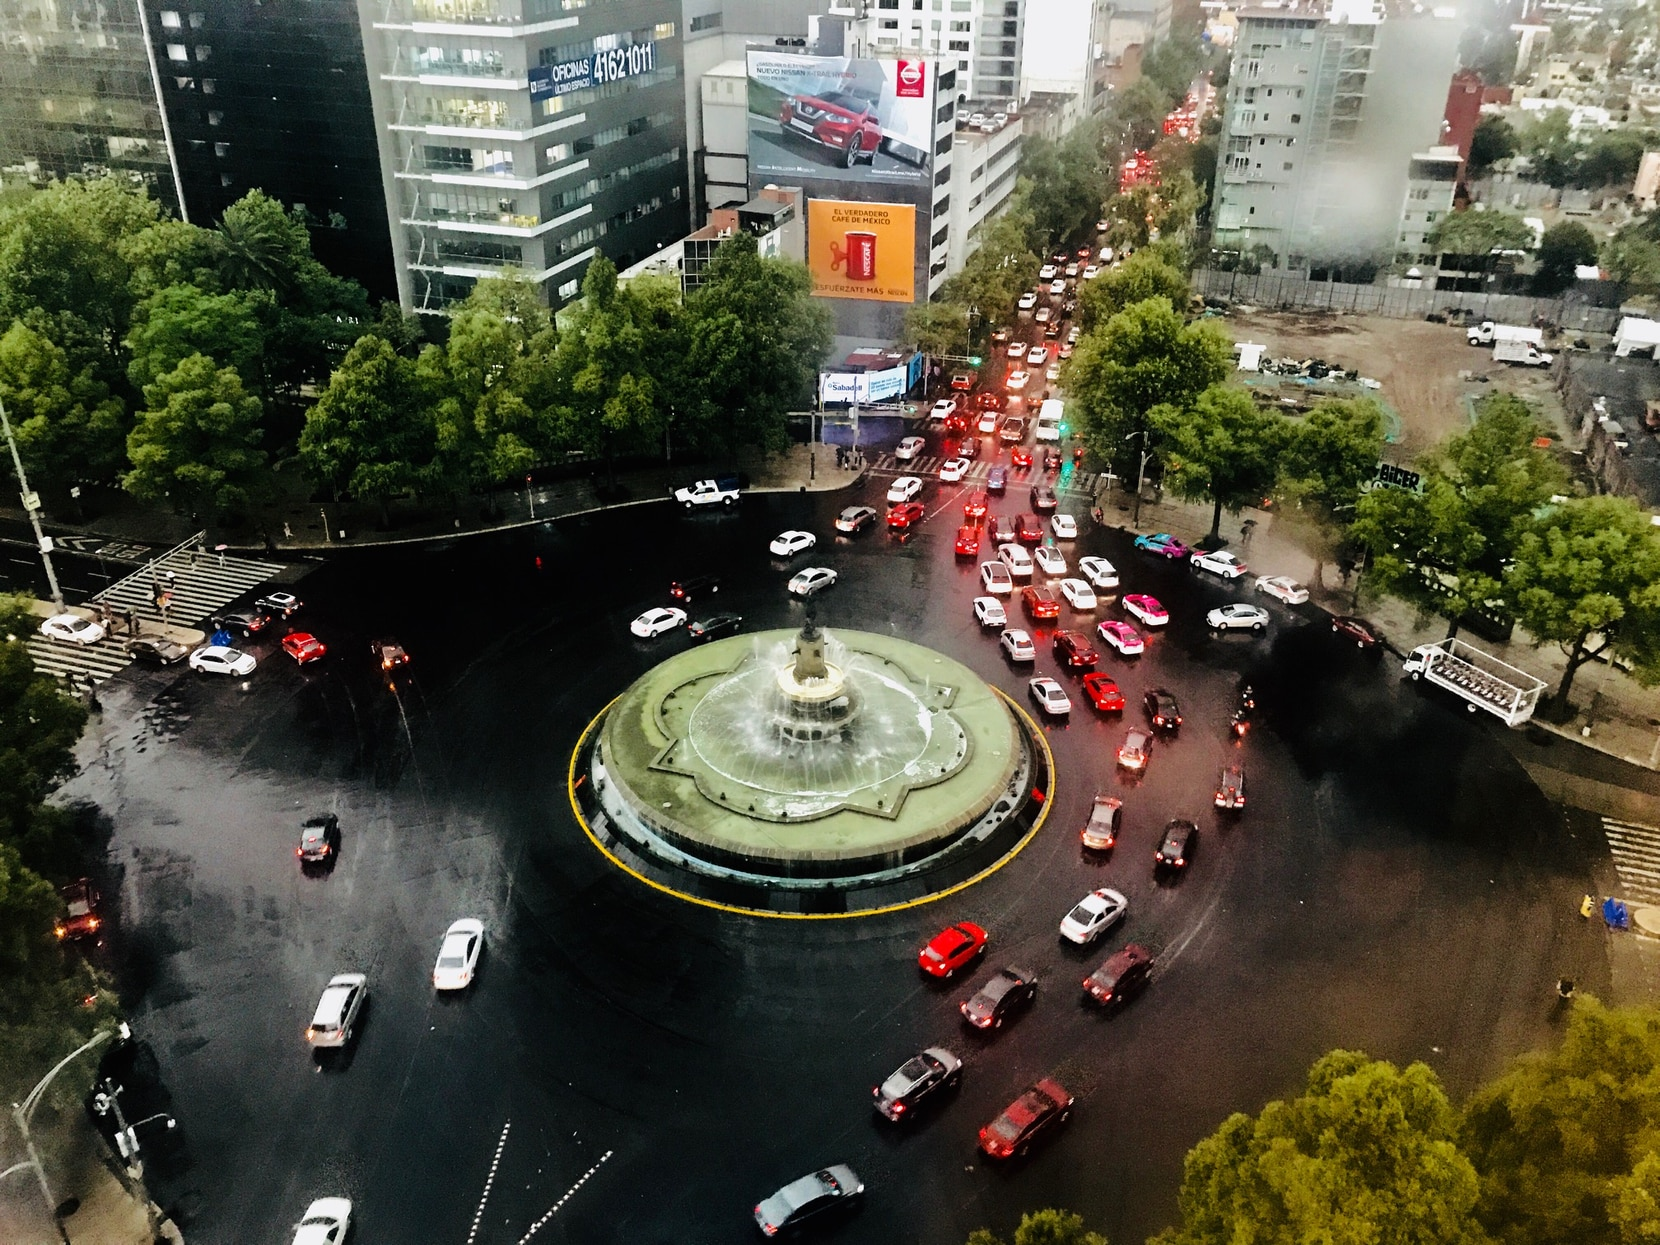 One of the most visited cities in Mexico is Mexico City, which lures travelers from all over the world.